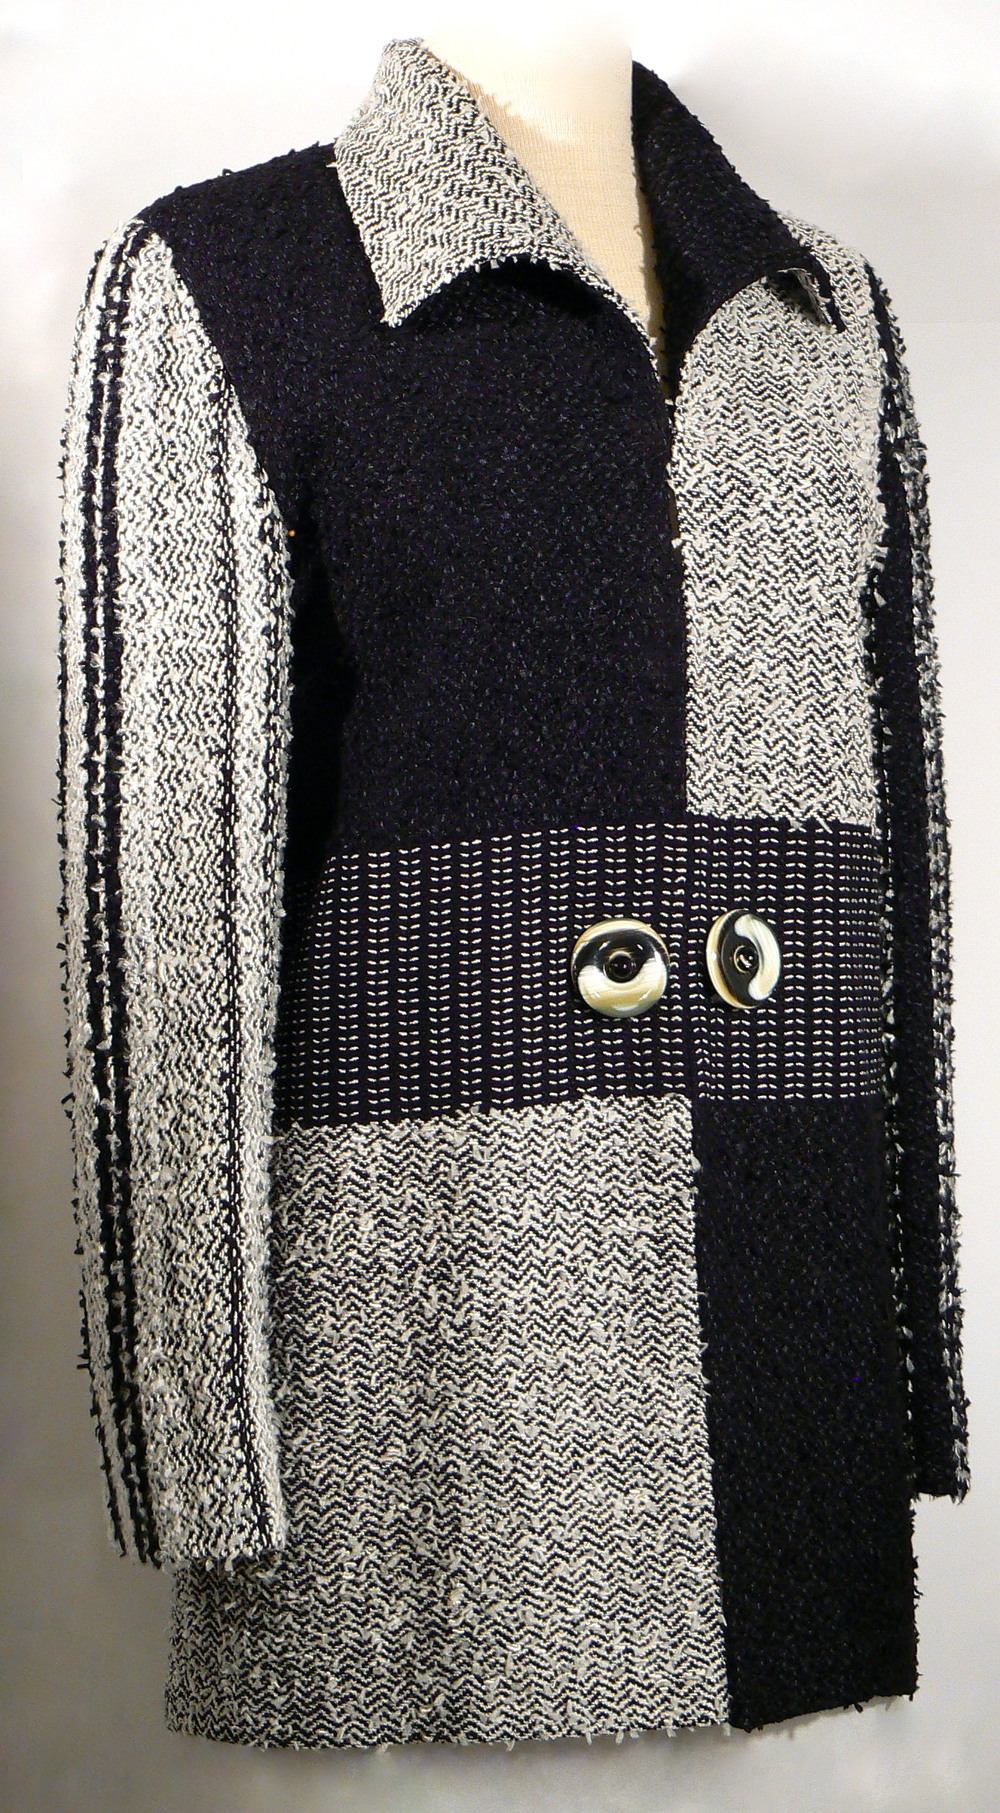 Handwoven Jacket Kathleen Weir-West 14-001.JPG